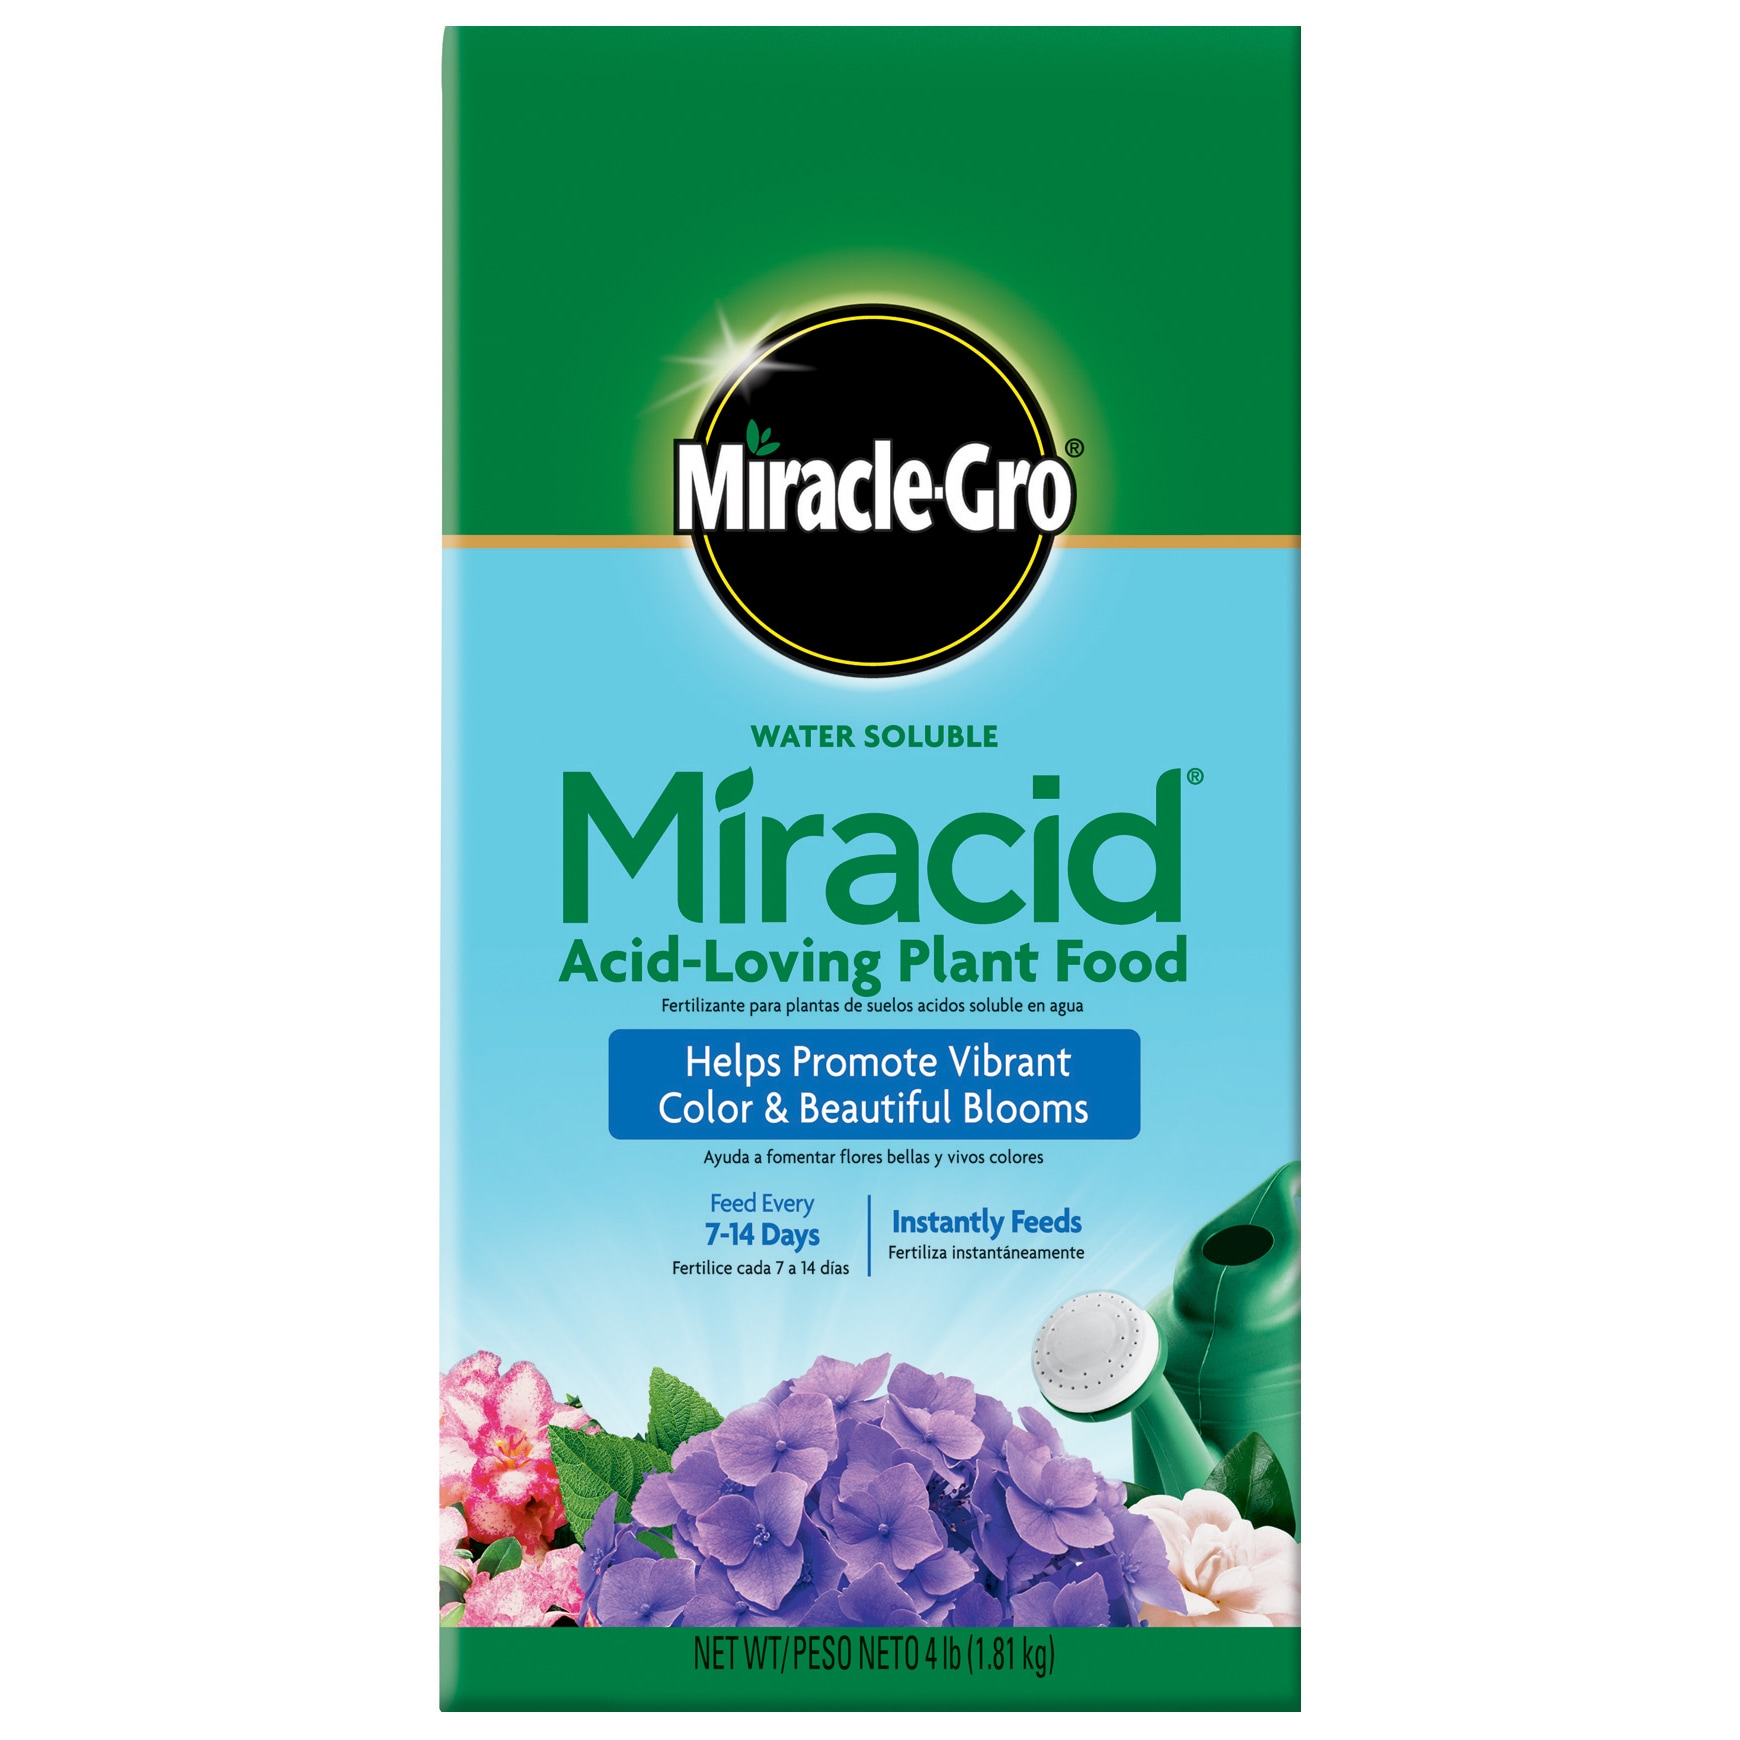 Miracle Gro 1850011 4-pound Water Soluble Miracid Acid-Lo...